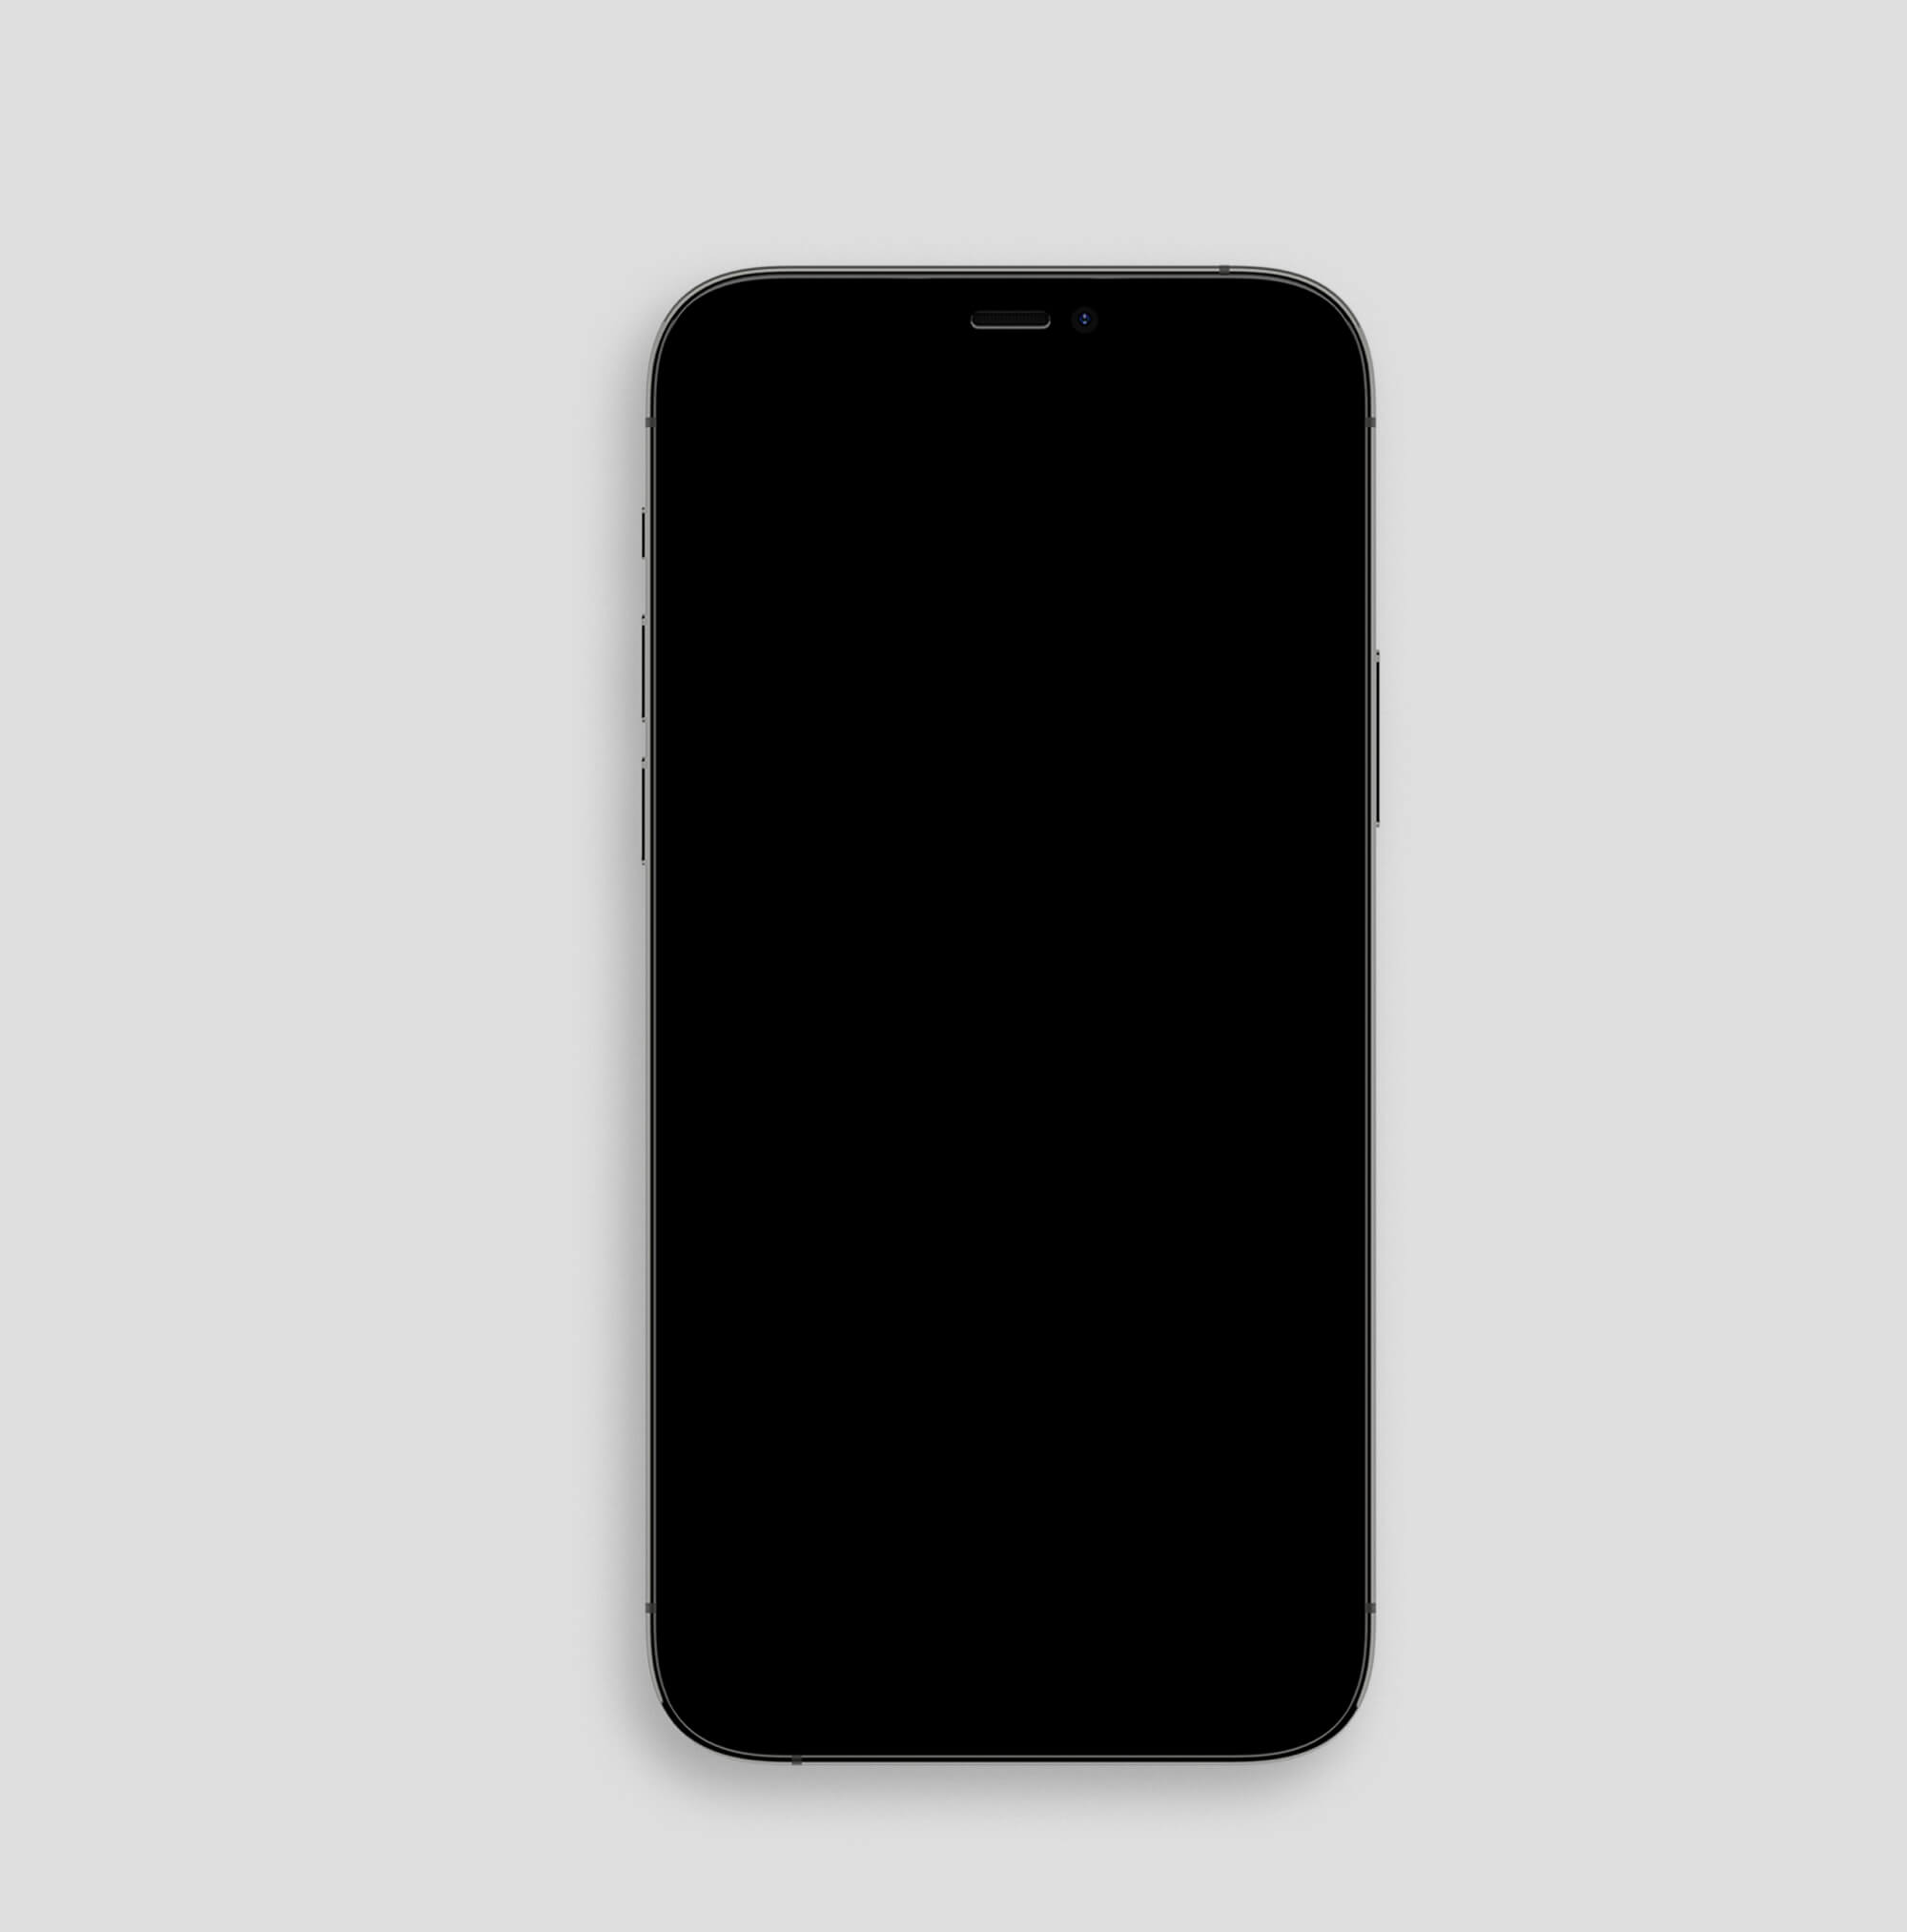 Blank Free Black iPhone Mockup PSD Template